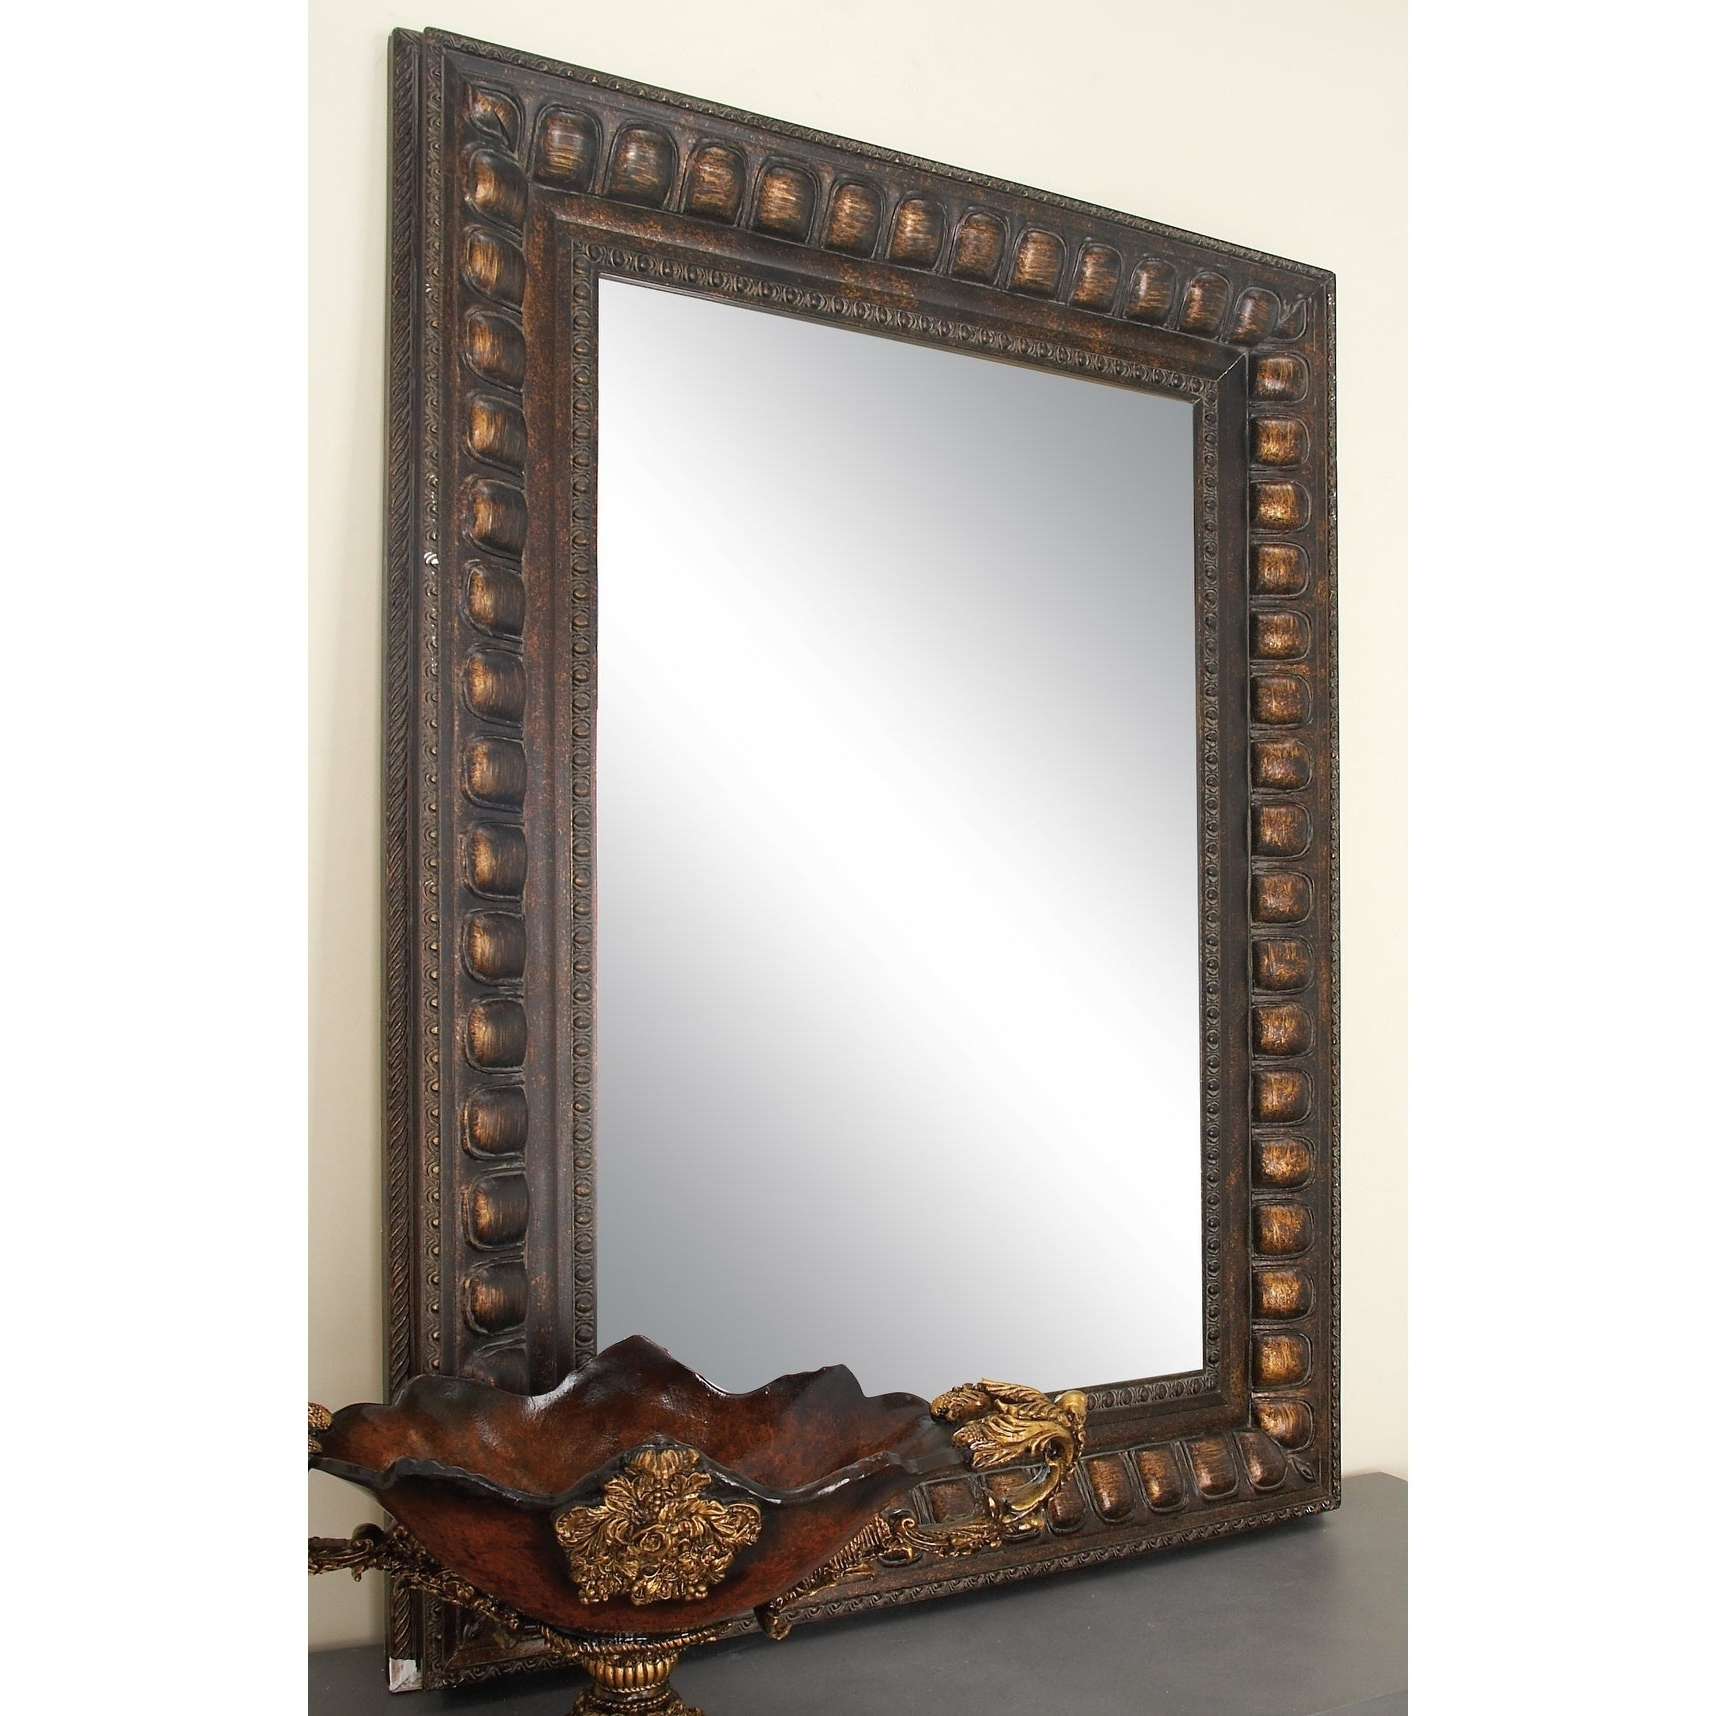 Traditional Beveled Wall Mirrors With Regard To Best And Newest Traditional 48 X 36 Inch Brown Wood Beveled Wall Mirrorstudio 350 – N/a (View 17 of 20)